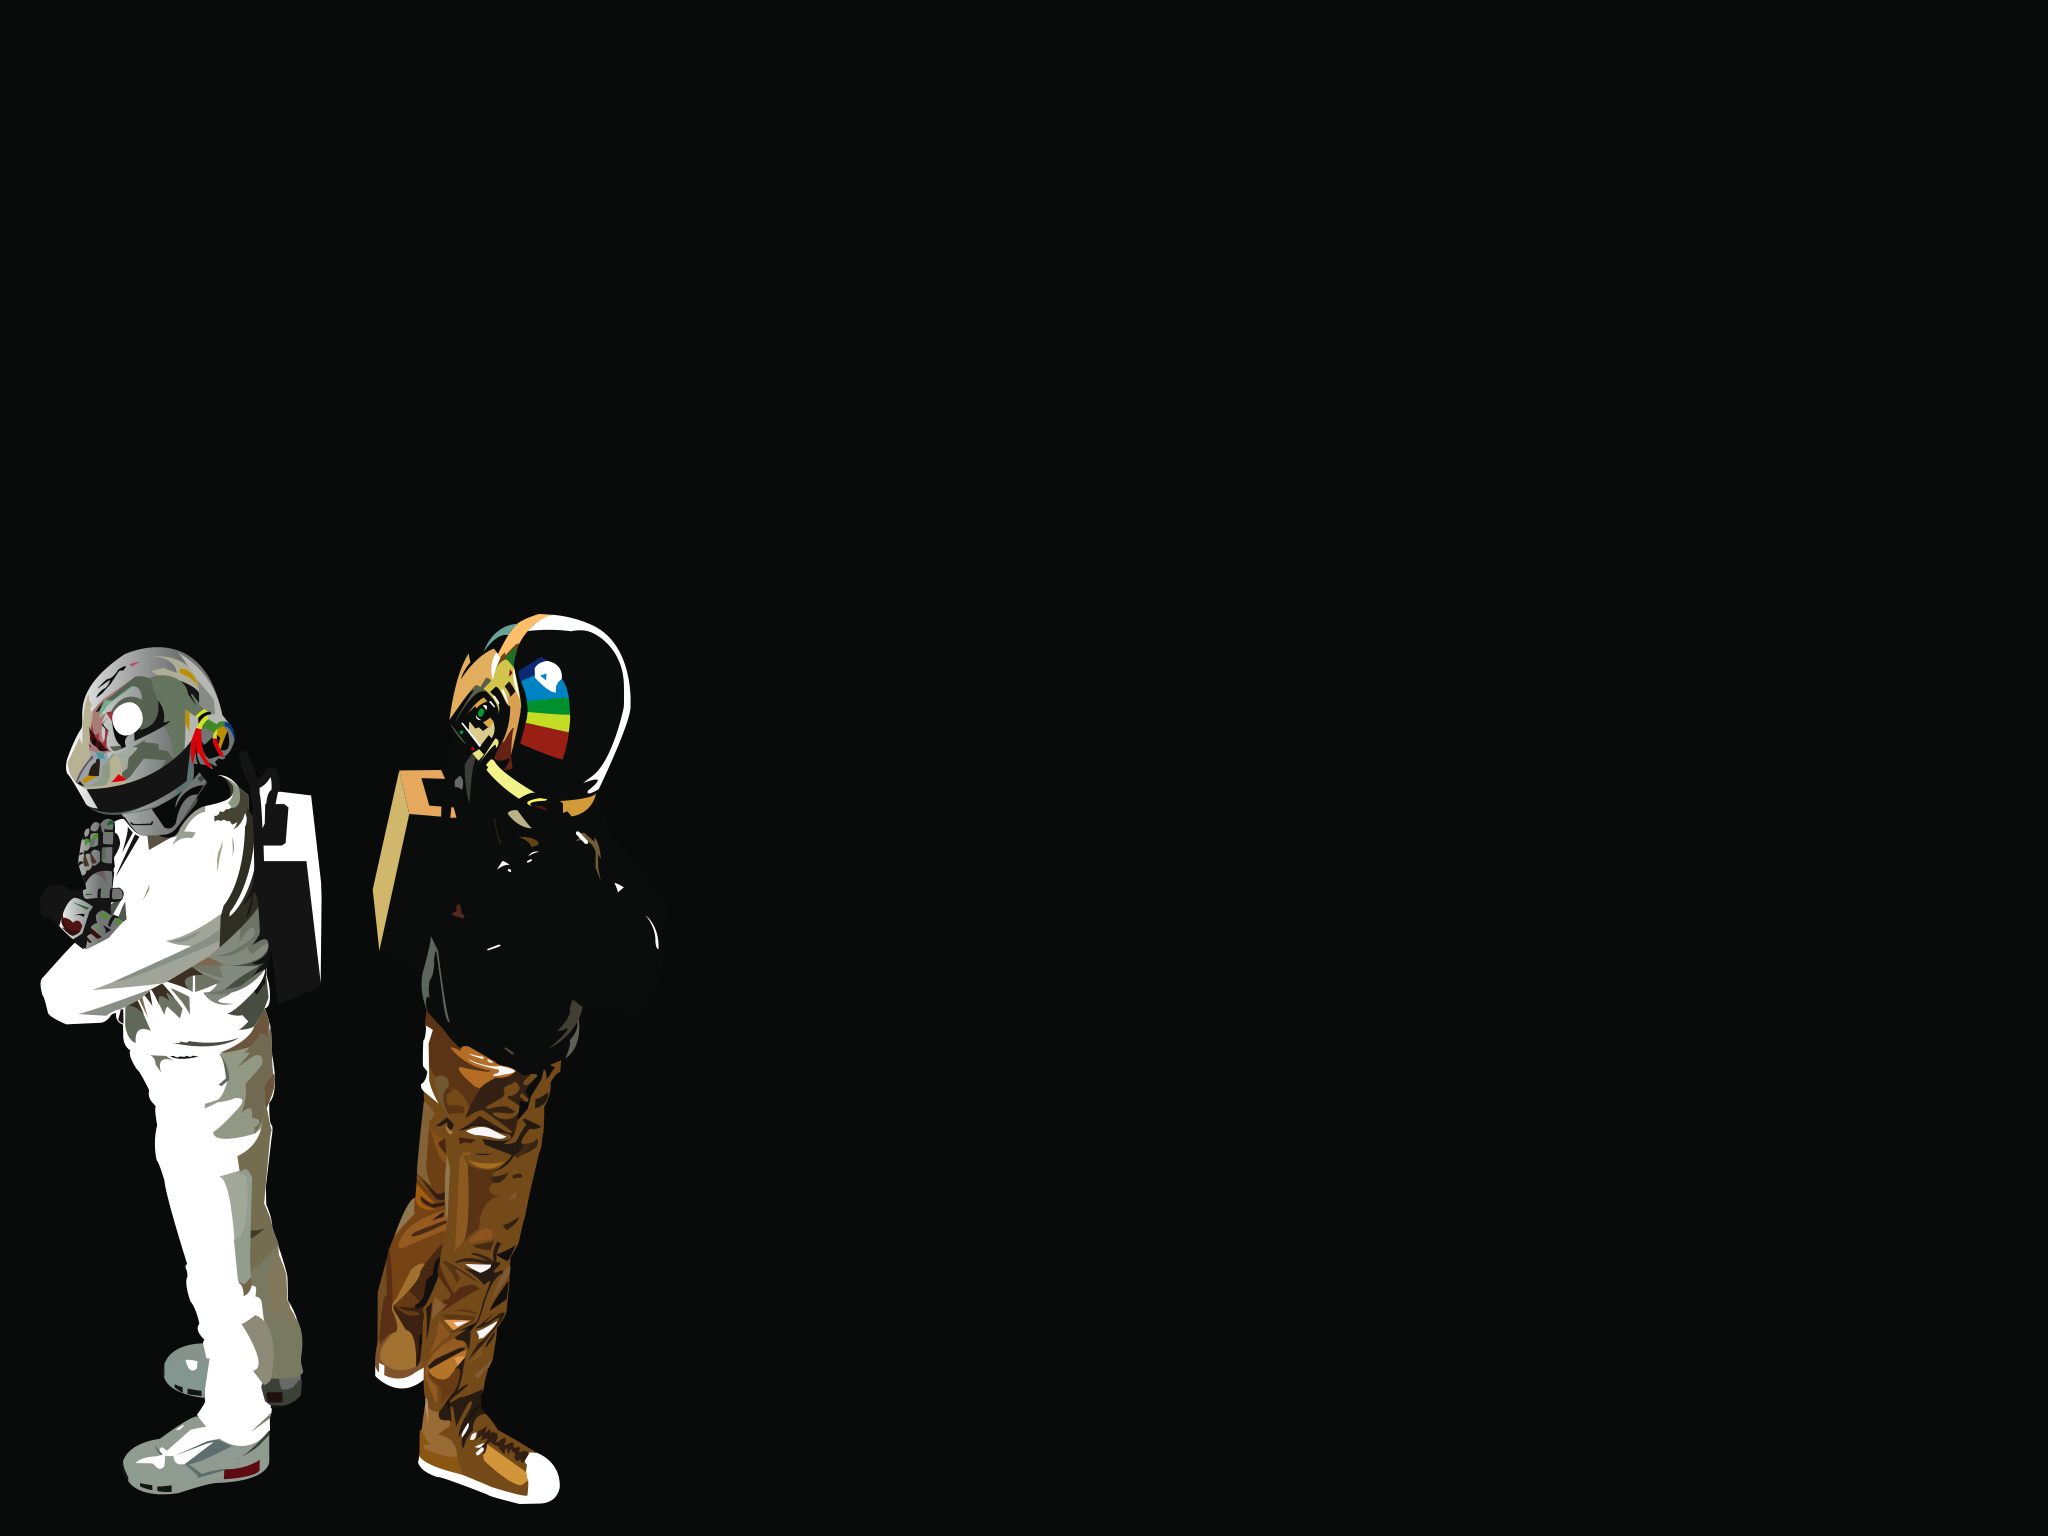 Draven And Girls Wallpaper Daft Punk Wallpapers High Quality Download Free